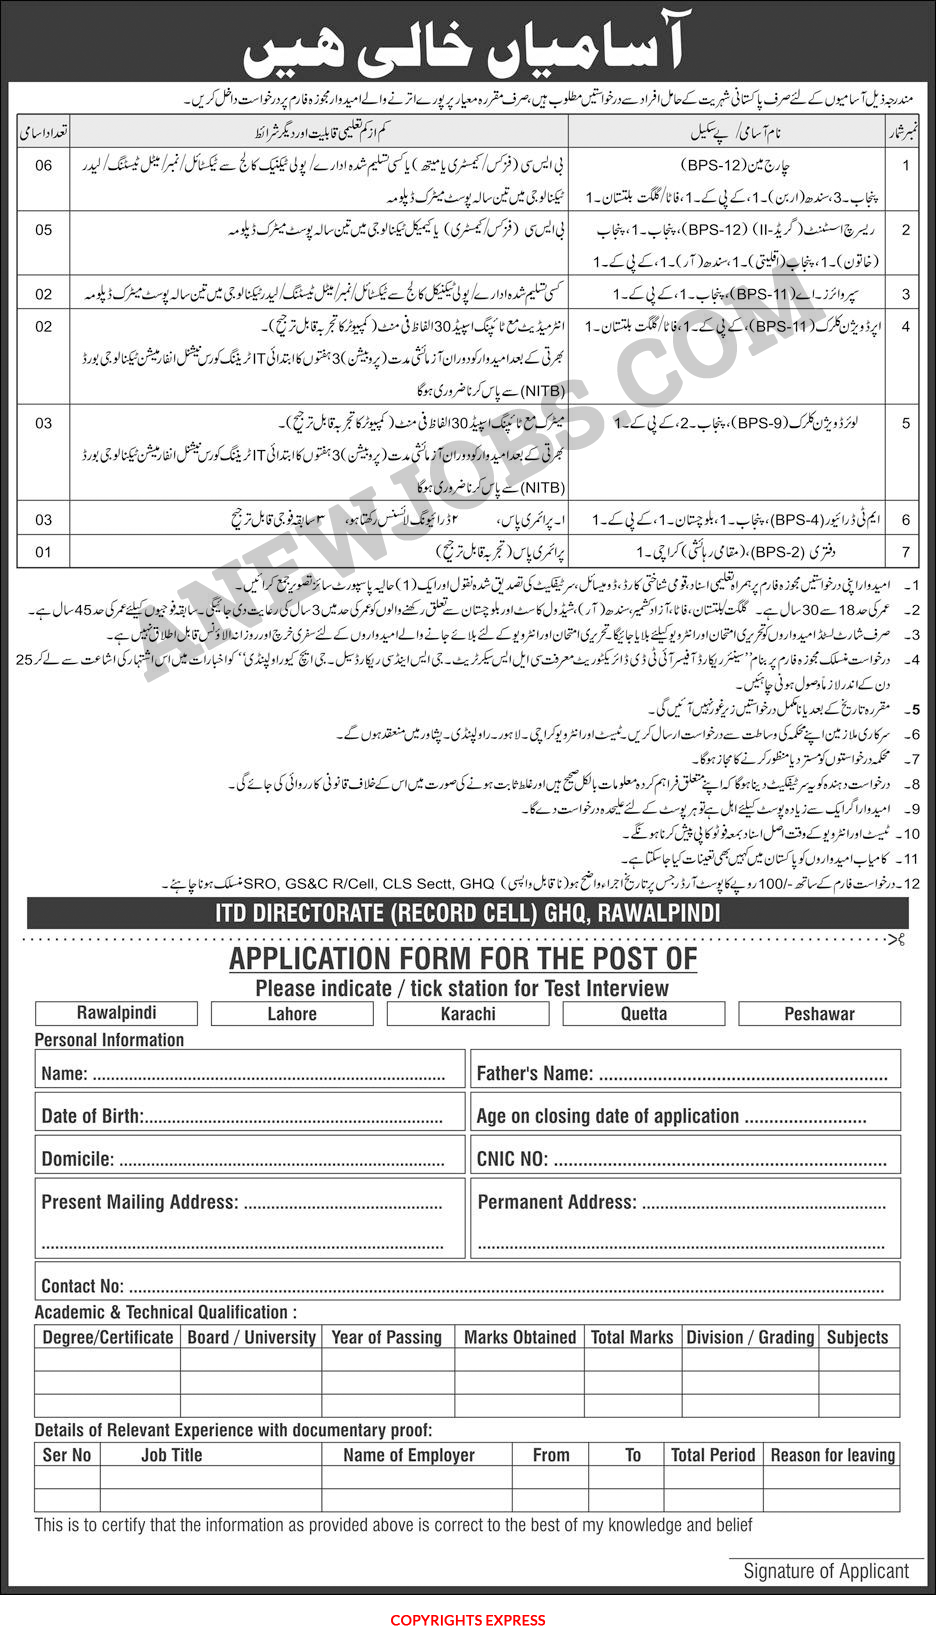 GHQ Rawalpindi Jobs 2018 [22+] For Charge Man, Assistant, & More ...